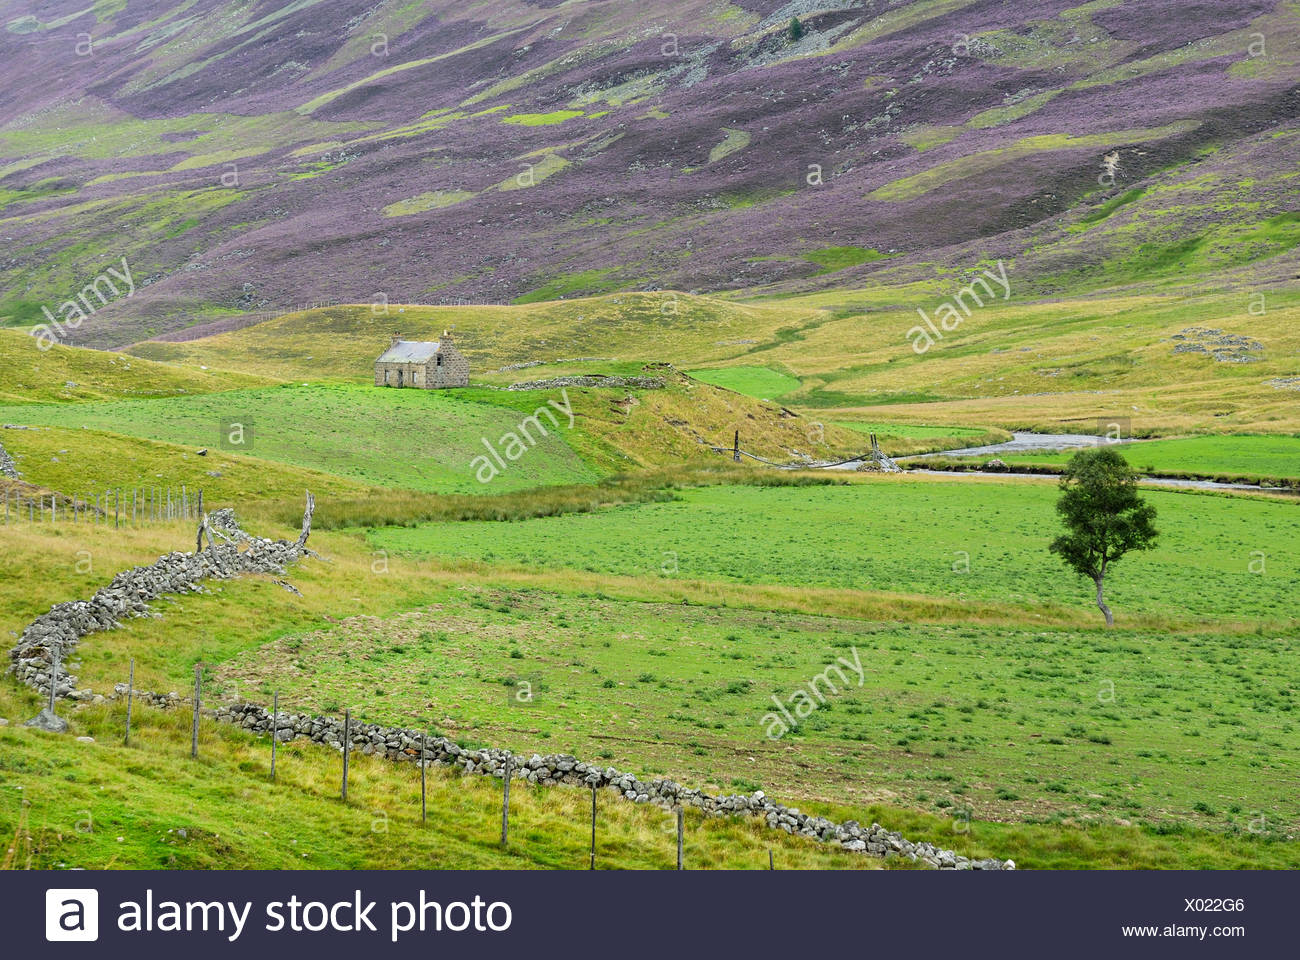 Meadow landscape of the Grampian Mountains, Scotland, Great Britain, Europe - Stock Image